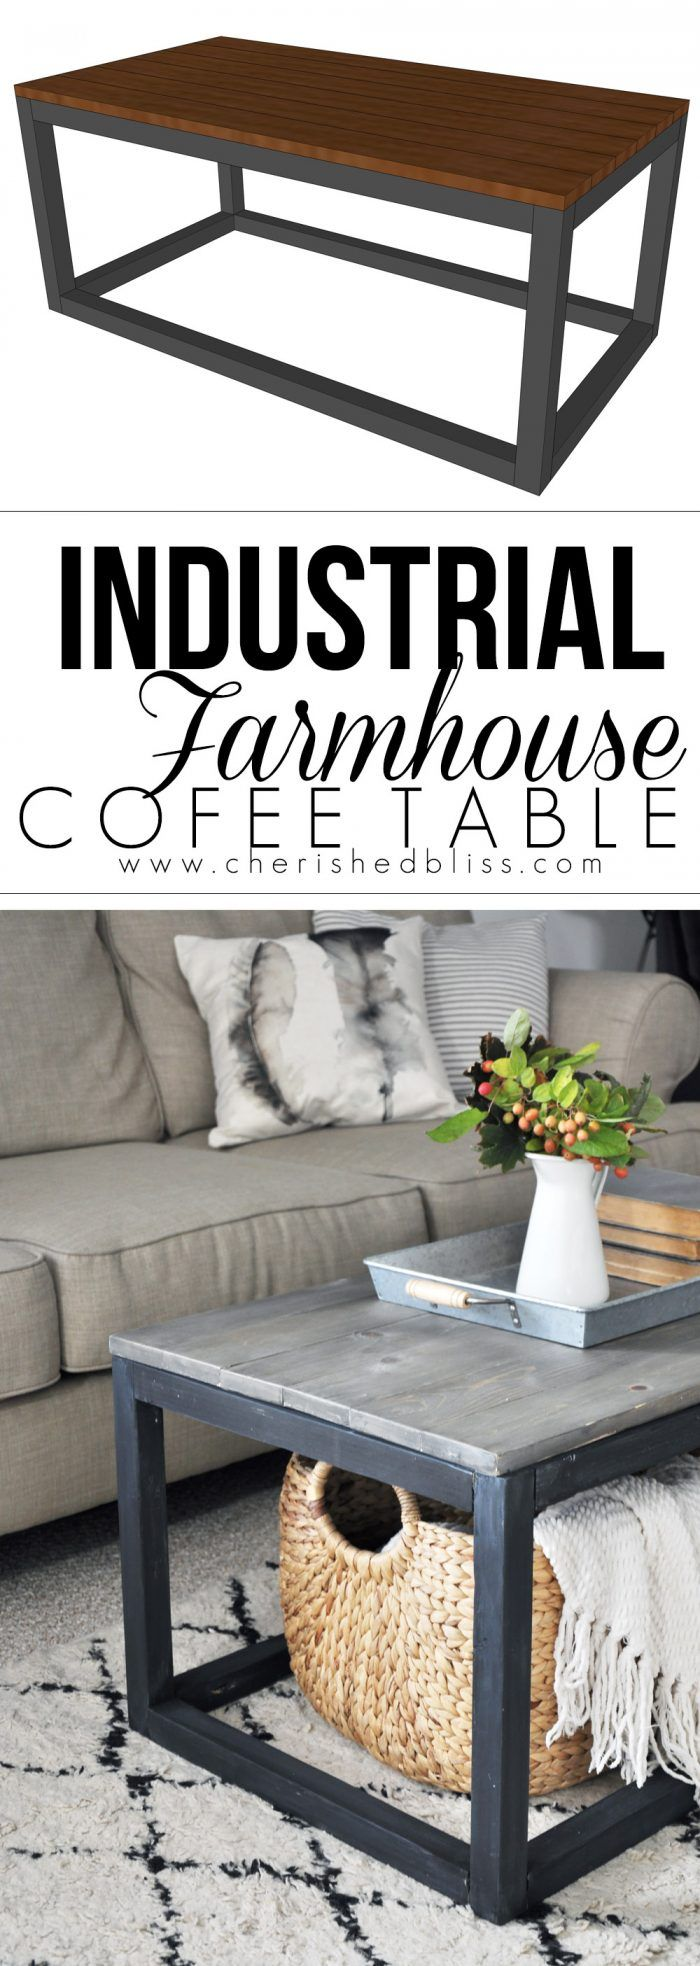 Industrial Farmhouse Coffee Table Free Plans Industrial